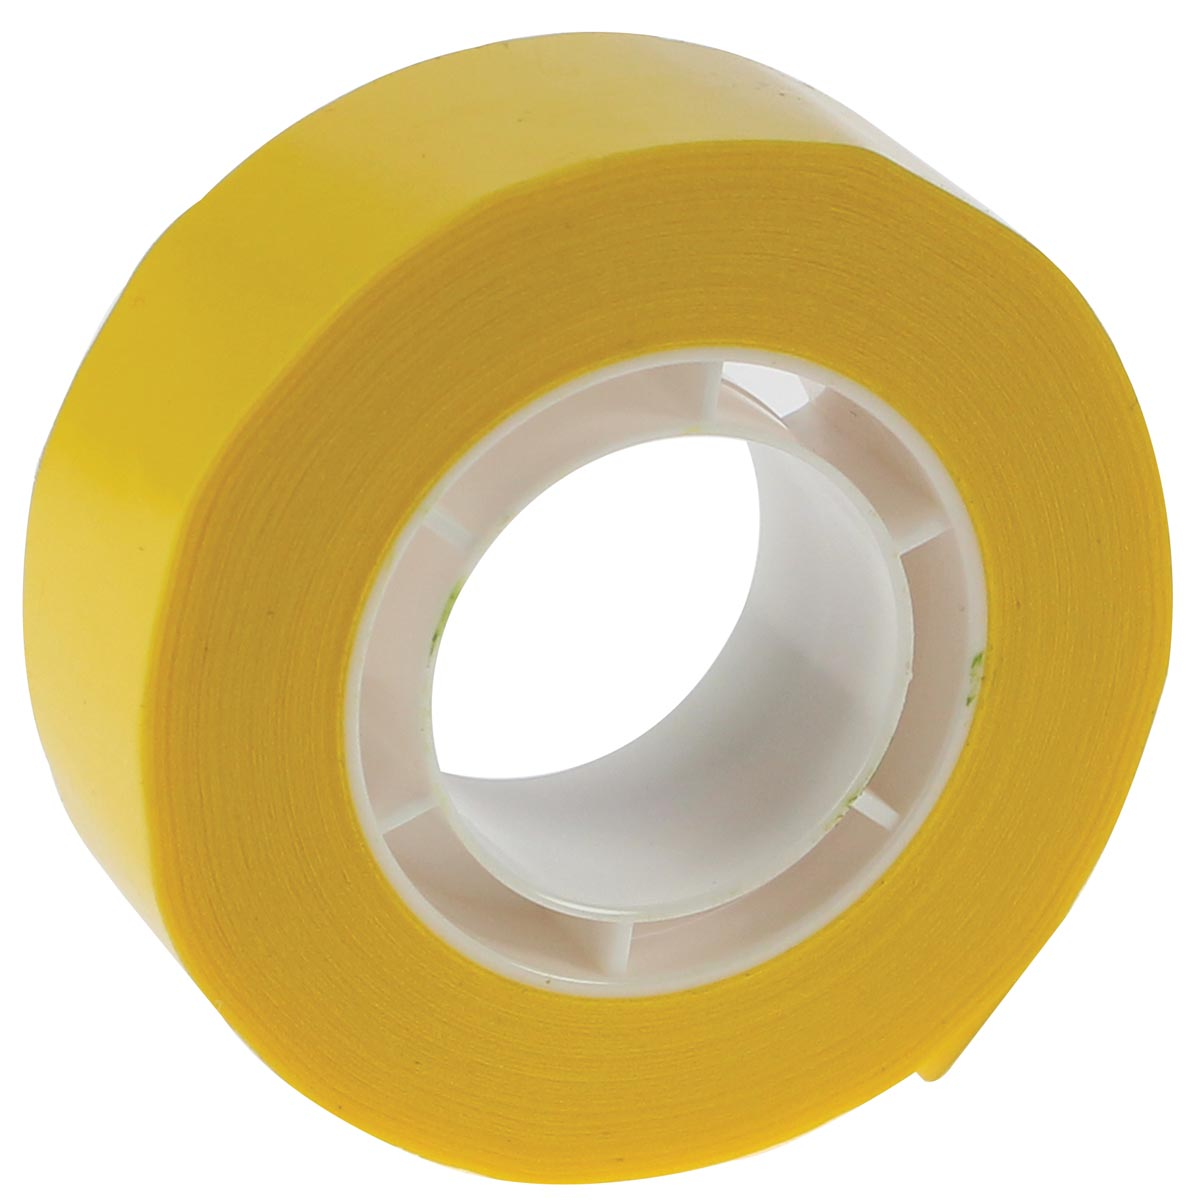 Apli plakband ft 19 mm x 33 m, geel